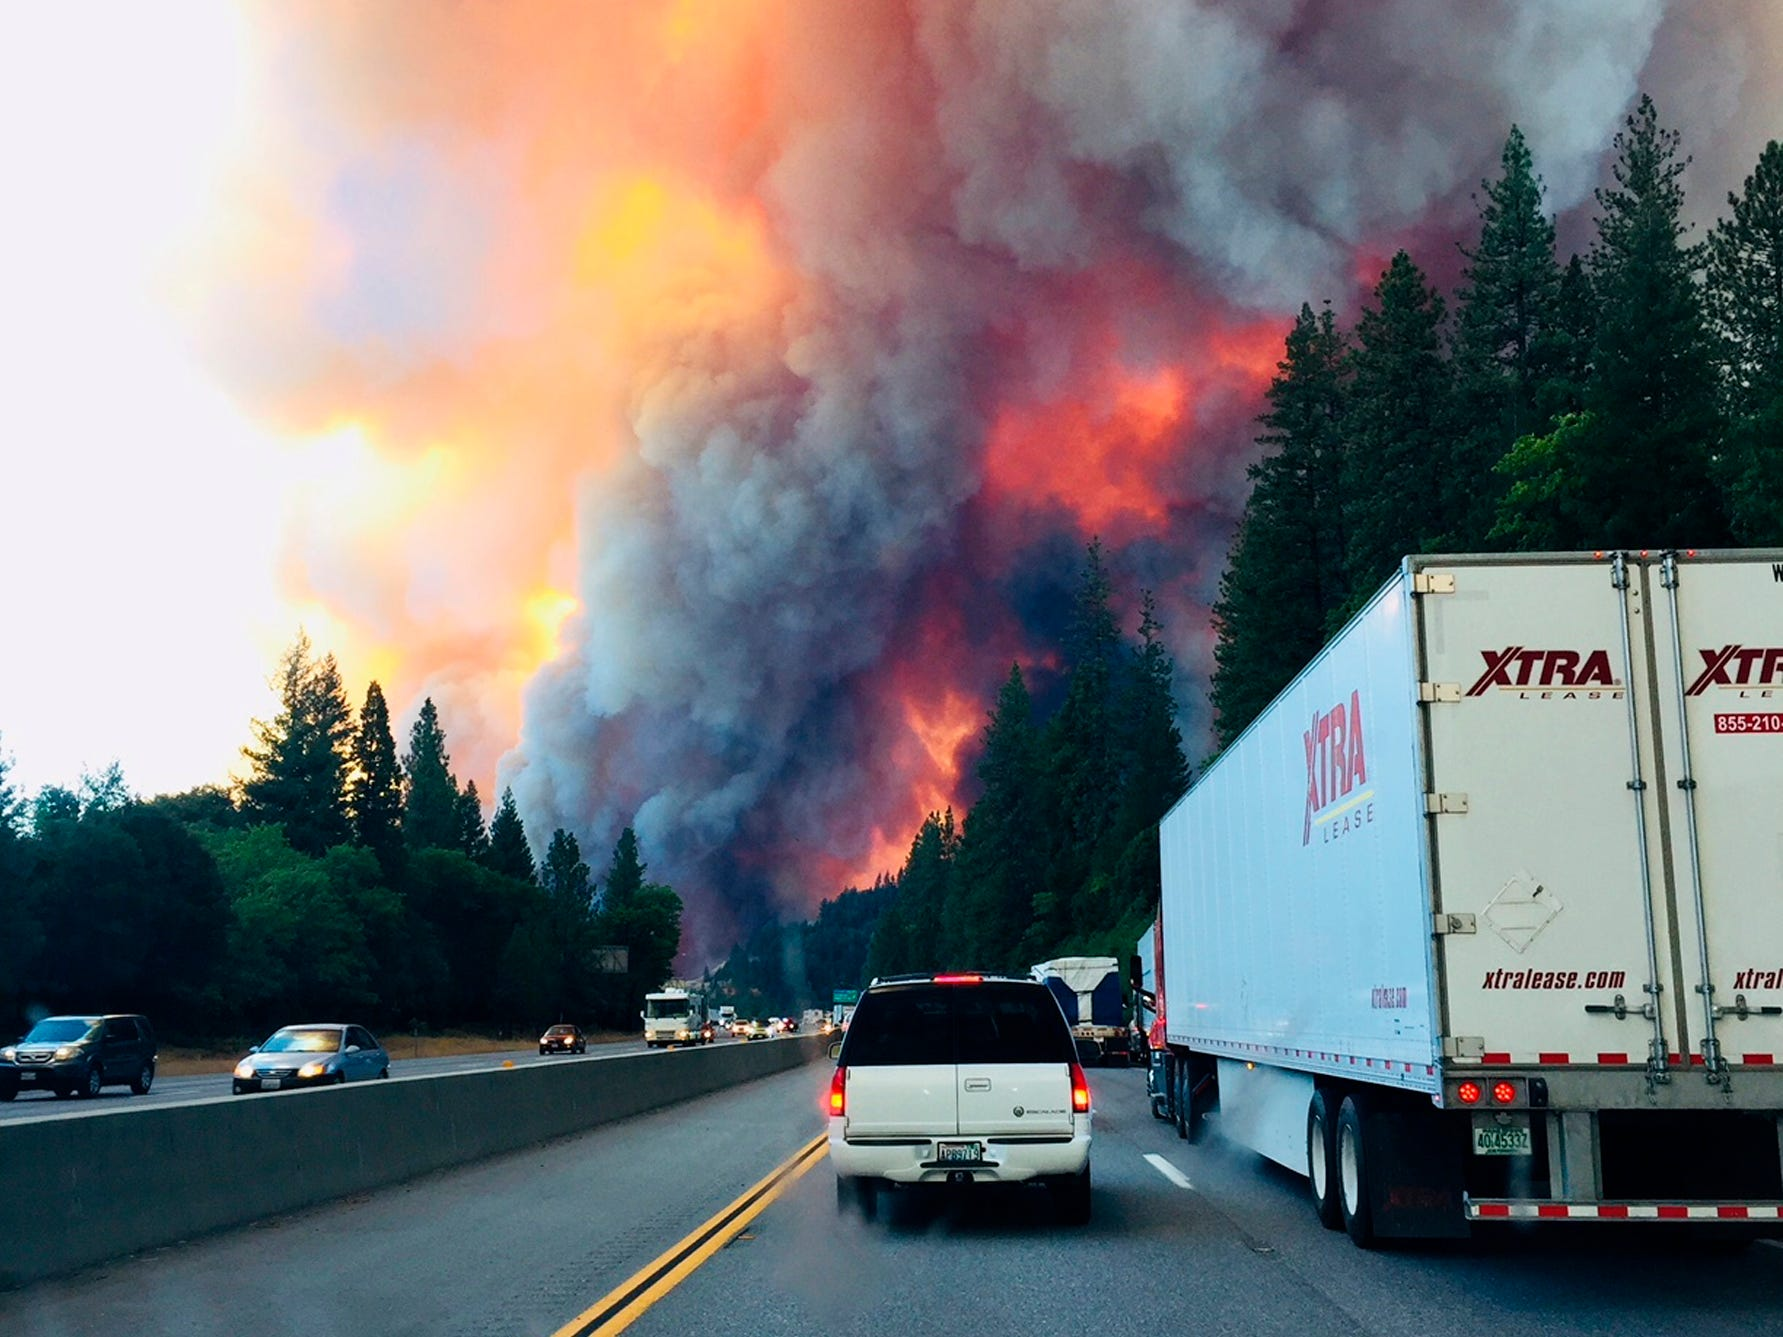 A fire rages as motorists travel on Interstate 5 near Lake Shasta, Calif., Sept. 5, 2018.